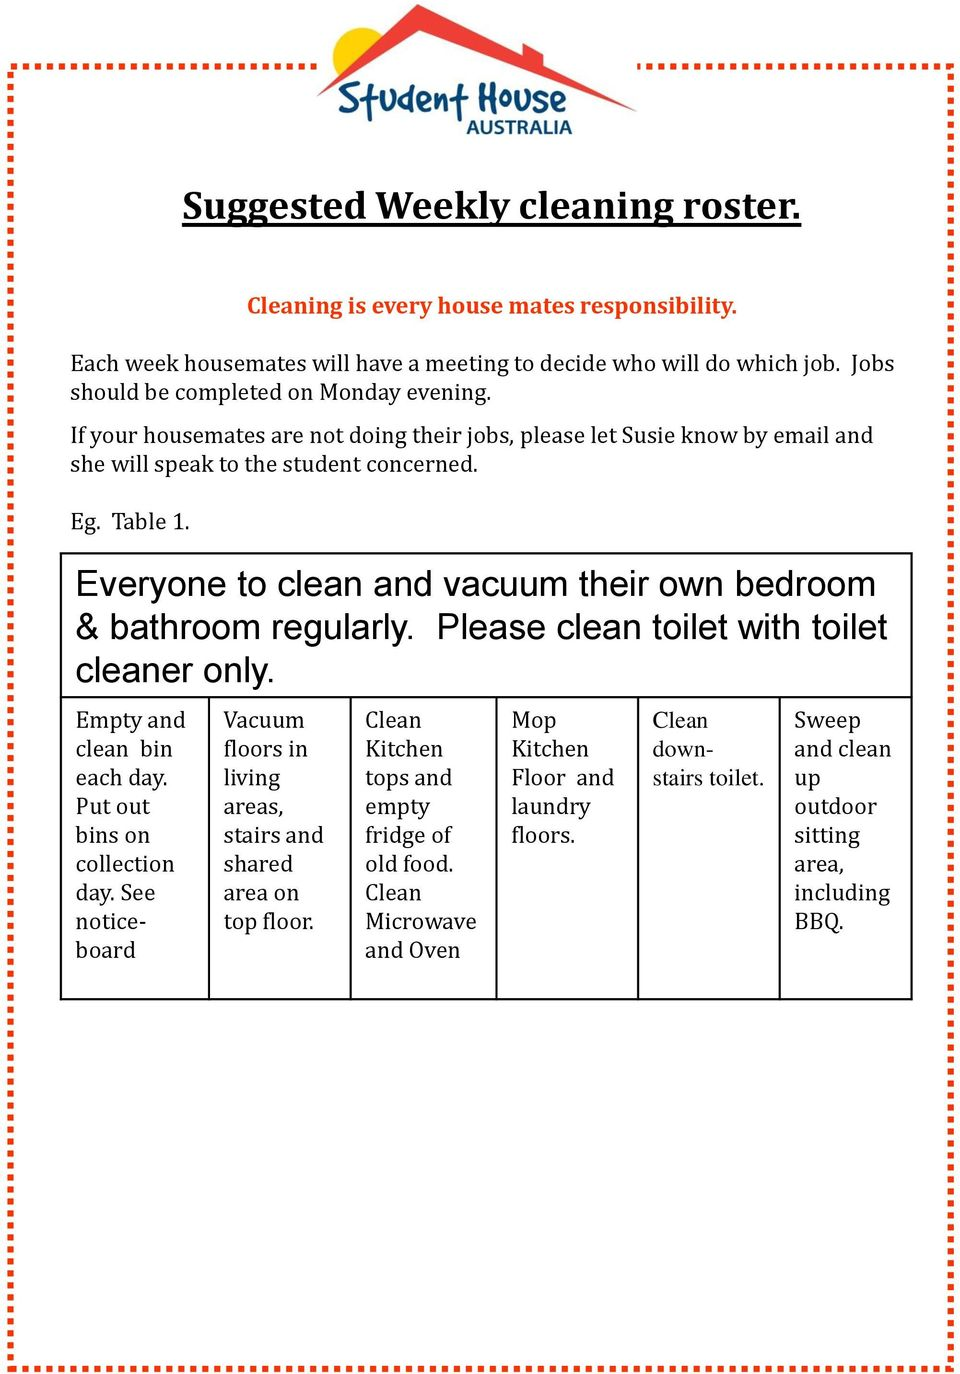 Everyone to clean and vacuum their own bedroom & bathroom regularly. Please clean toilet with toilet cleaner only. Empty and clean bin each day. Put out bins on collection day.